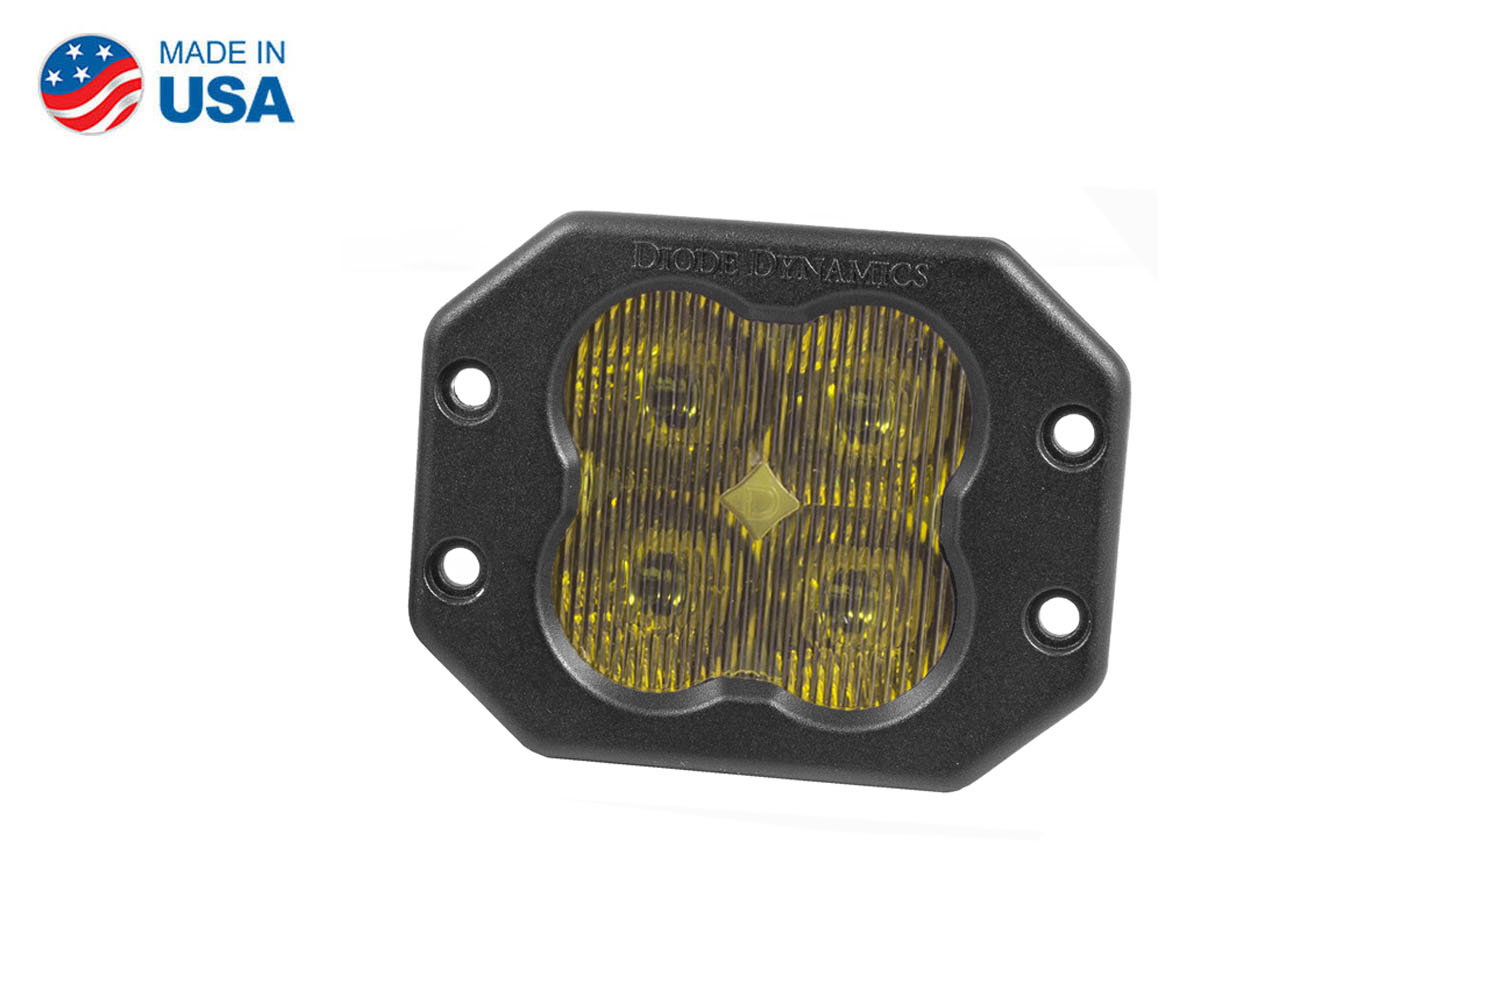 Diode Dynamics Worklight SS3 Pro Yellow SAE Fog Flush (single)